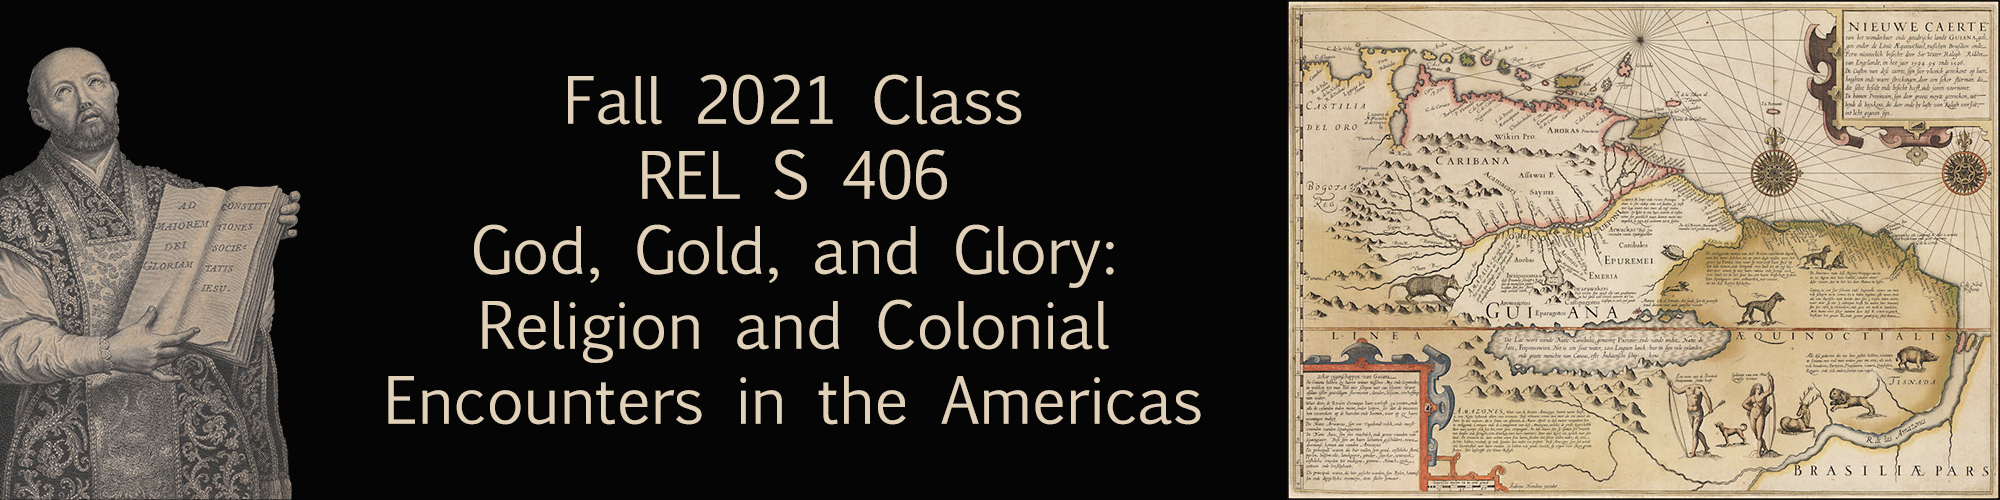 Fall 2021 Course REL S 406 God, Gold, and Glory: Religion and Colonial Encounters in the America